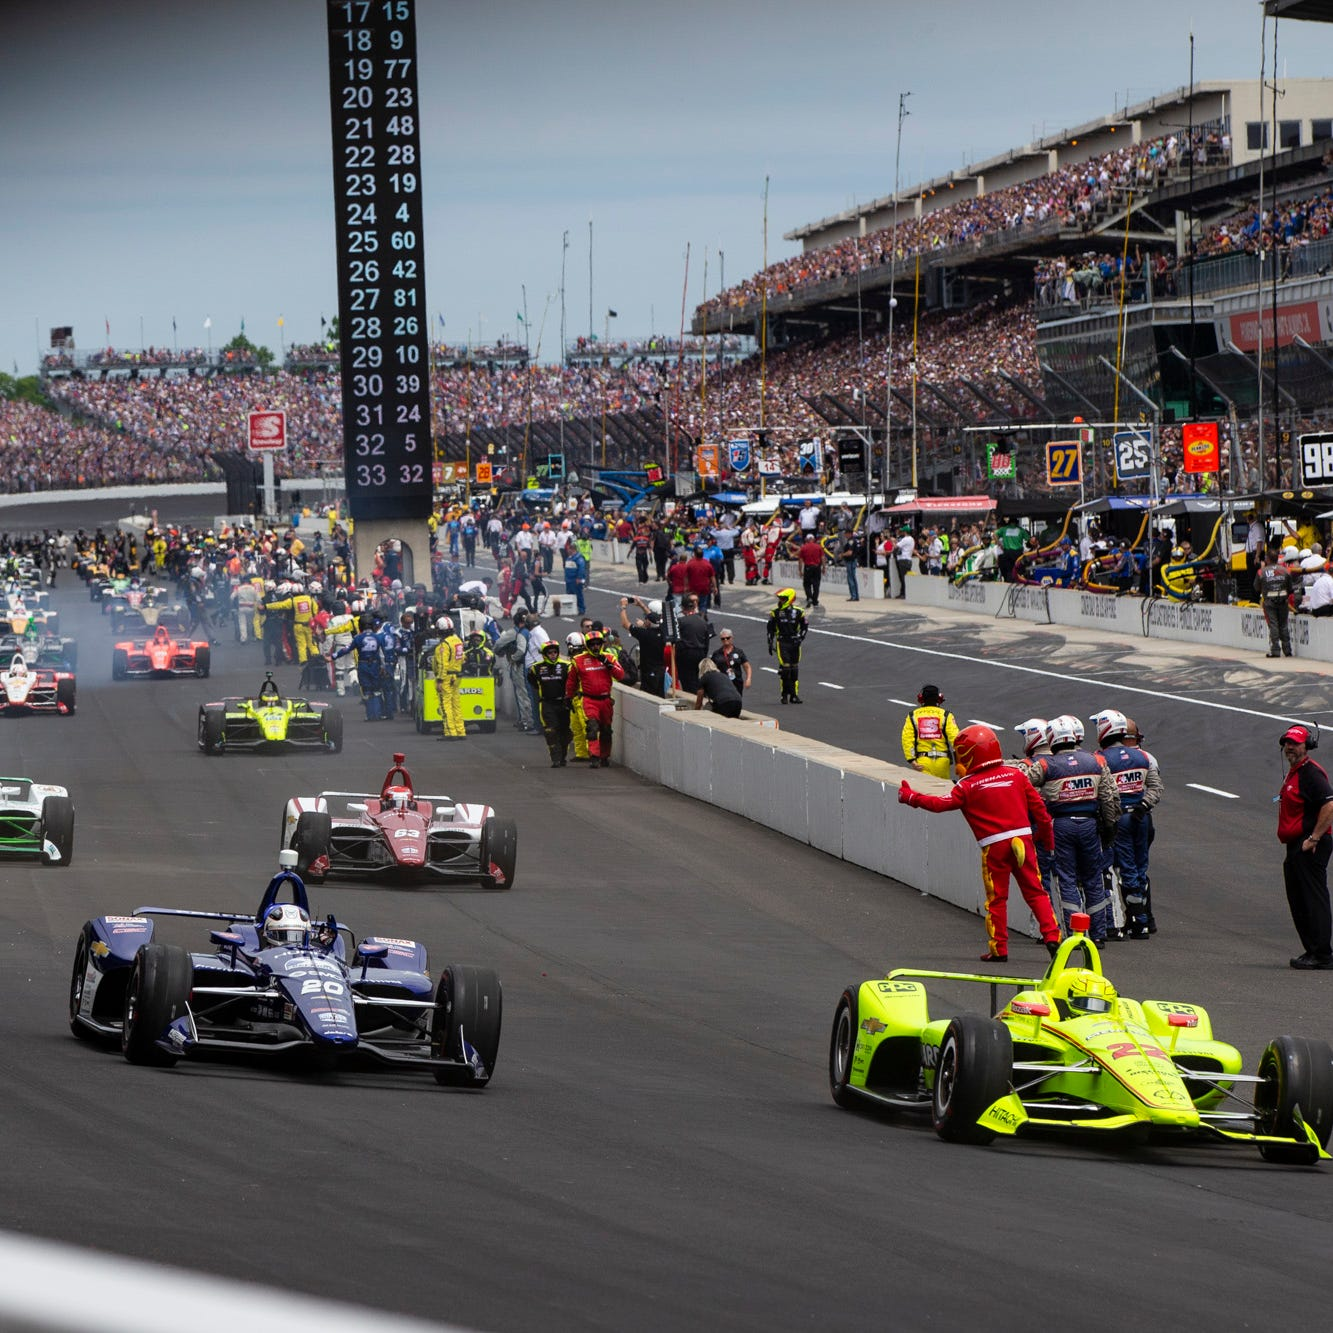 Indy 500 results: A summary of how each driver finished